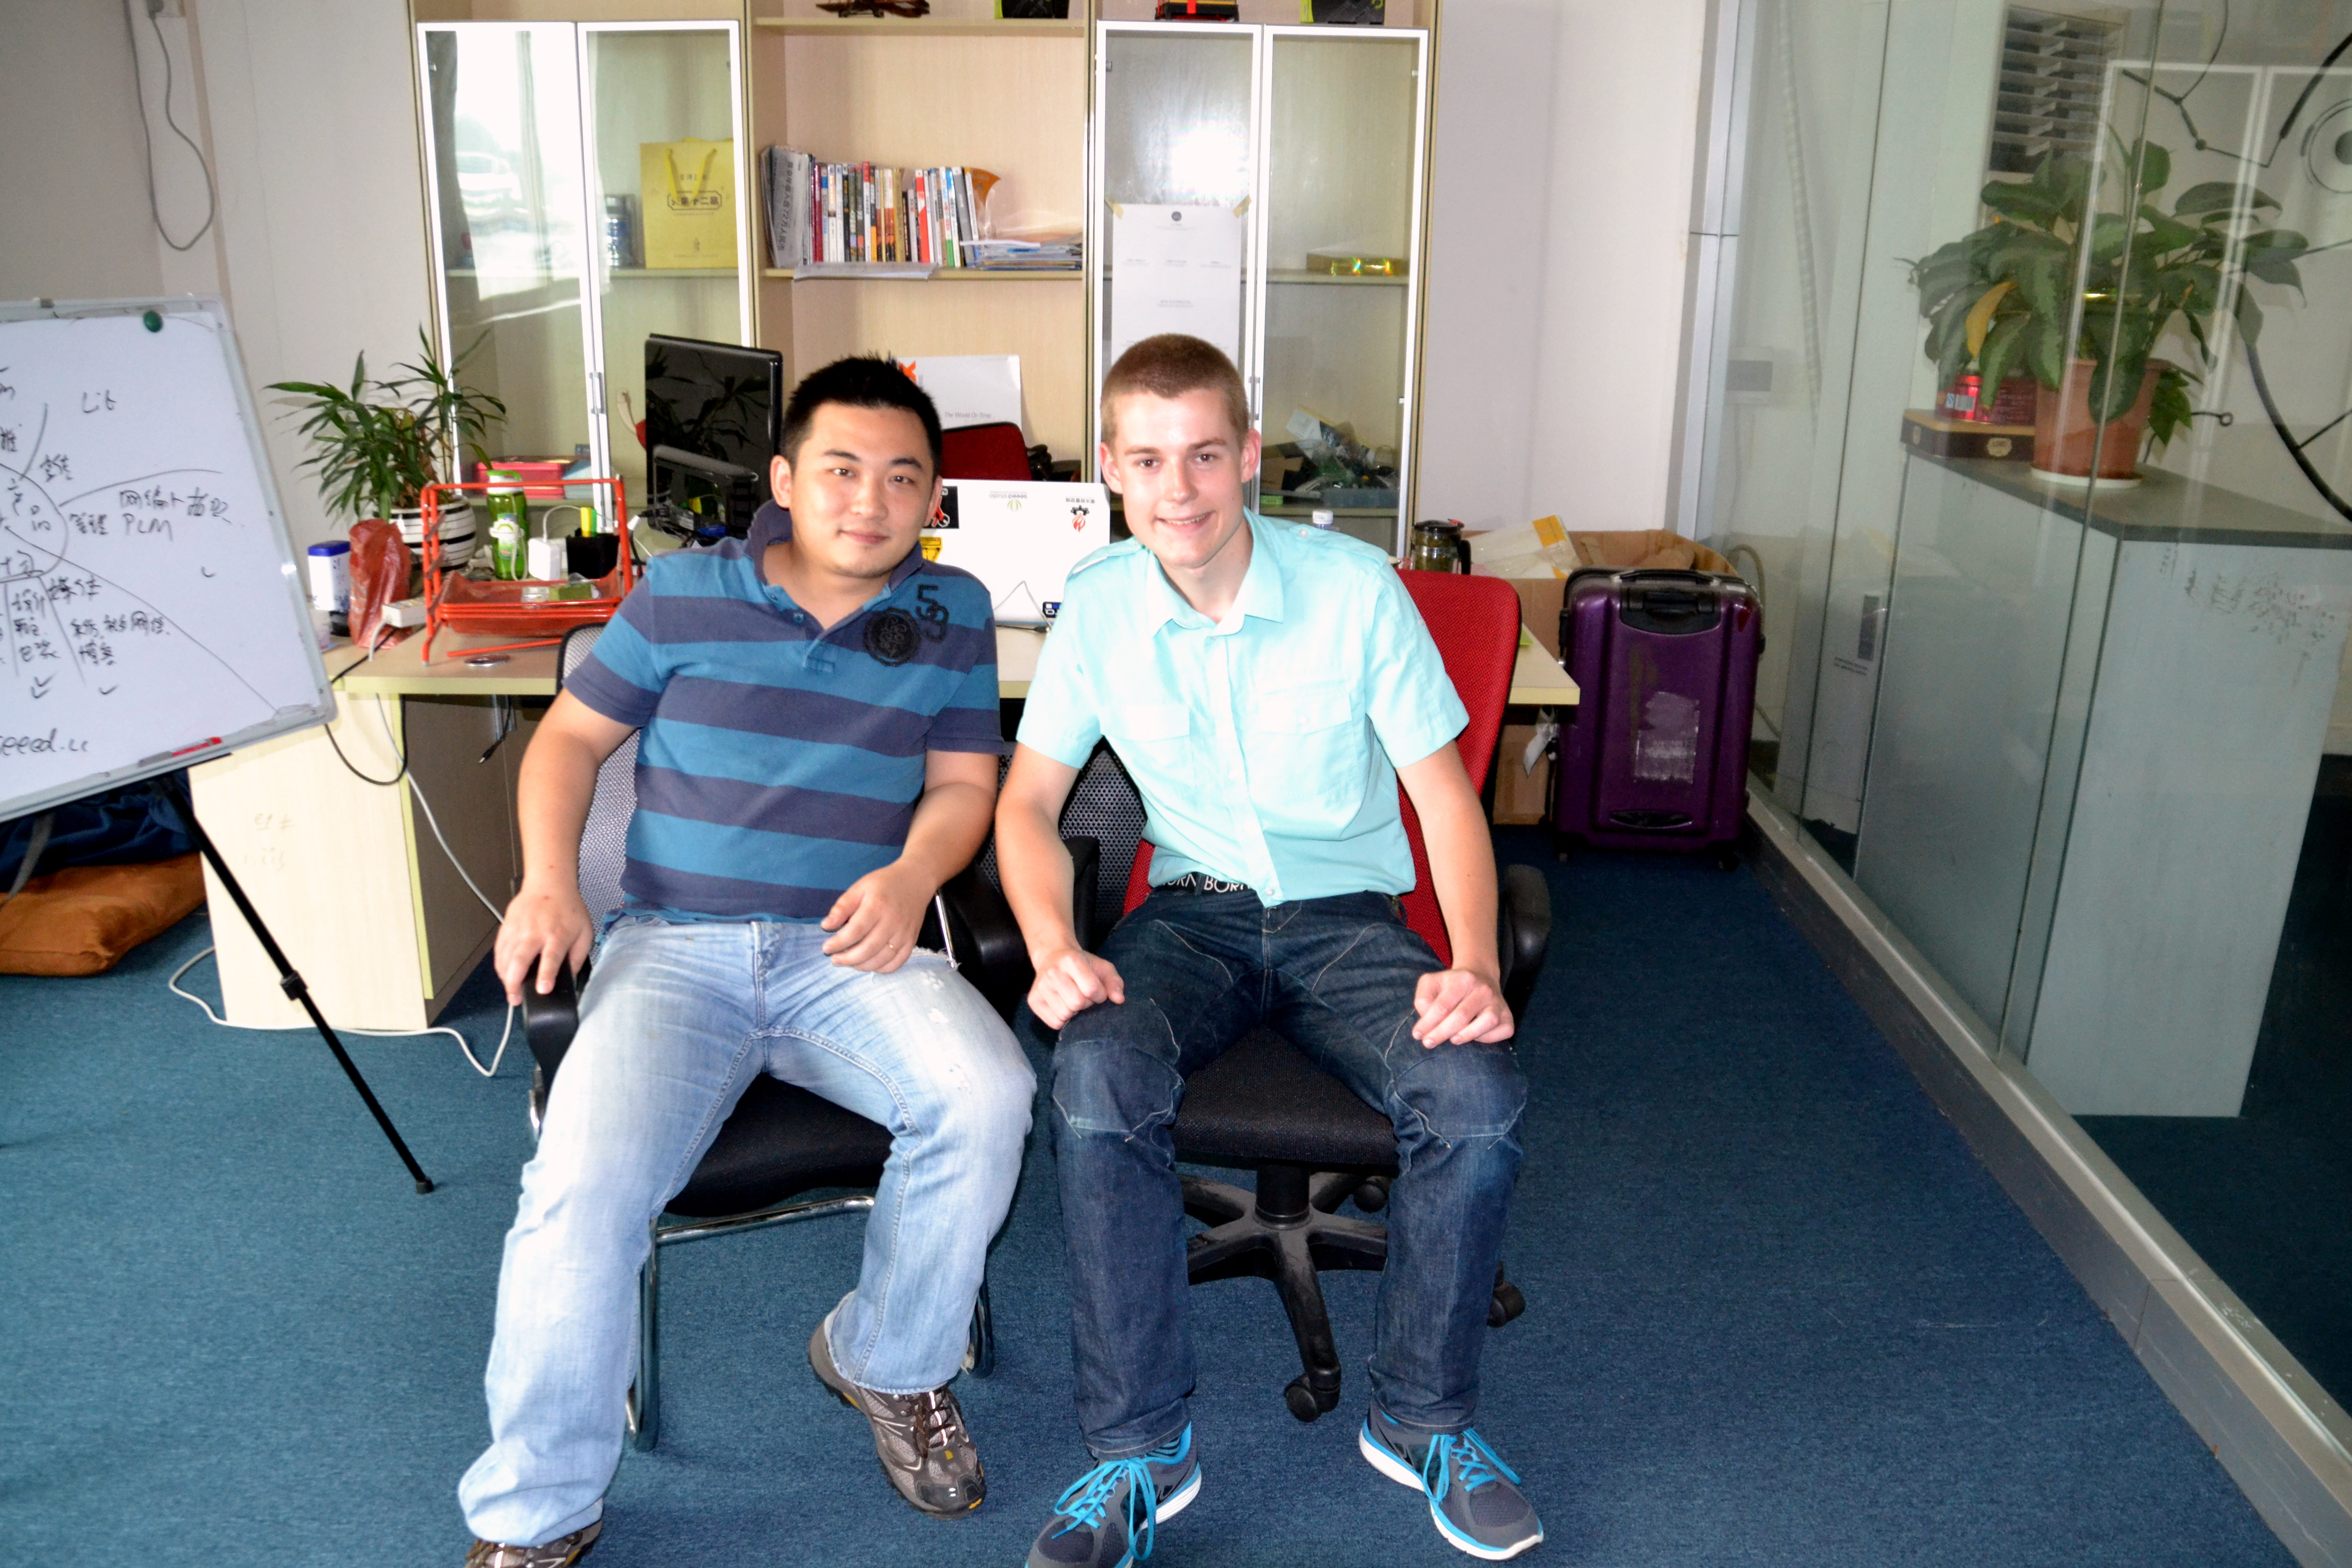 SeeedStudio CEO and me